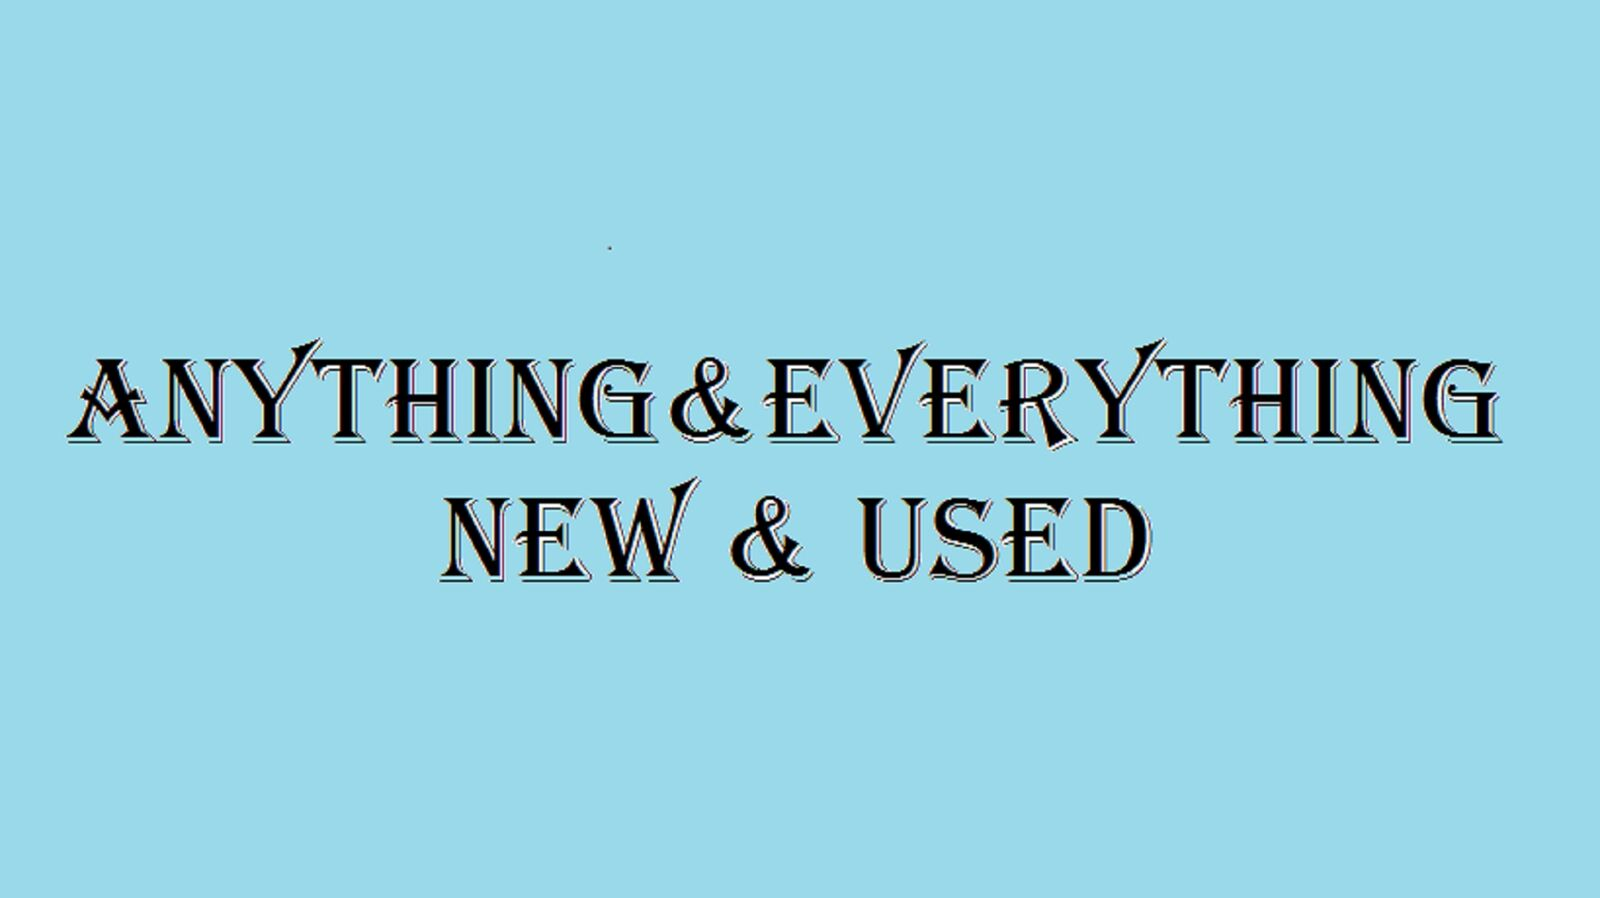 Anything & Everything New & Used